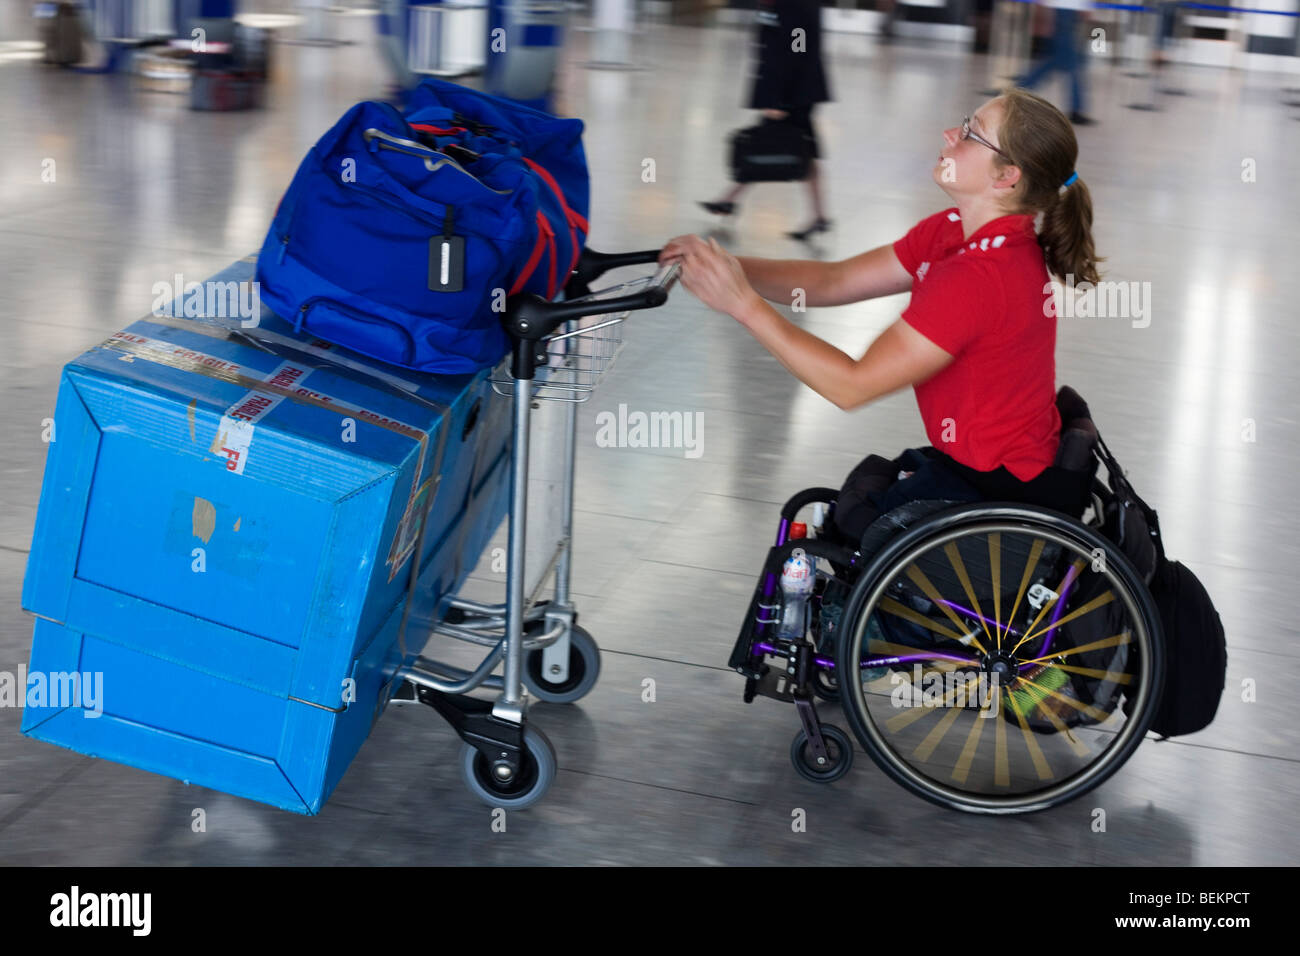 A disabled airline passenger makes her own way through the Departures concourse of Heathrow Airport. - Stock Image